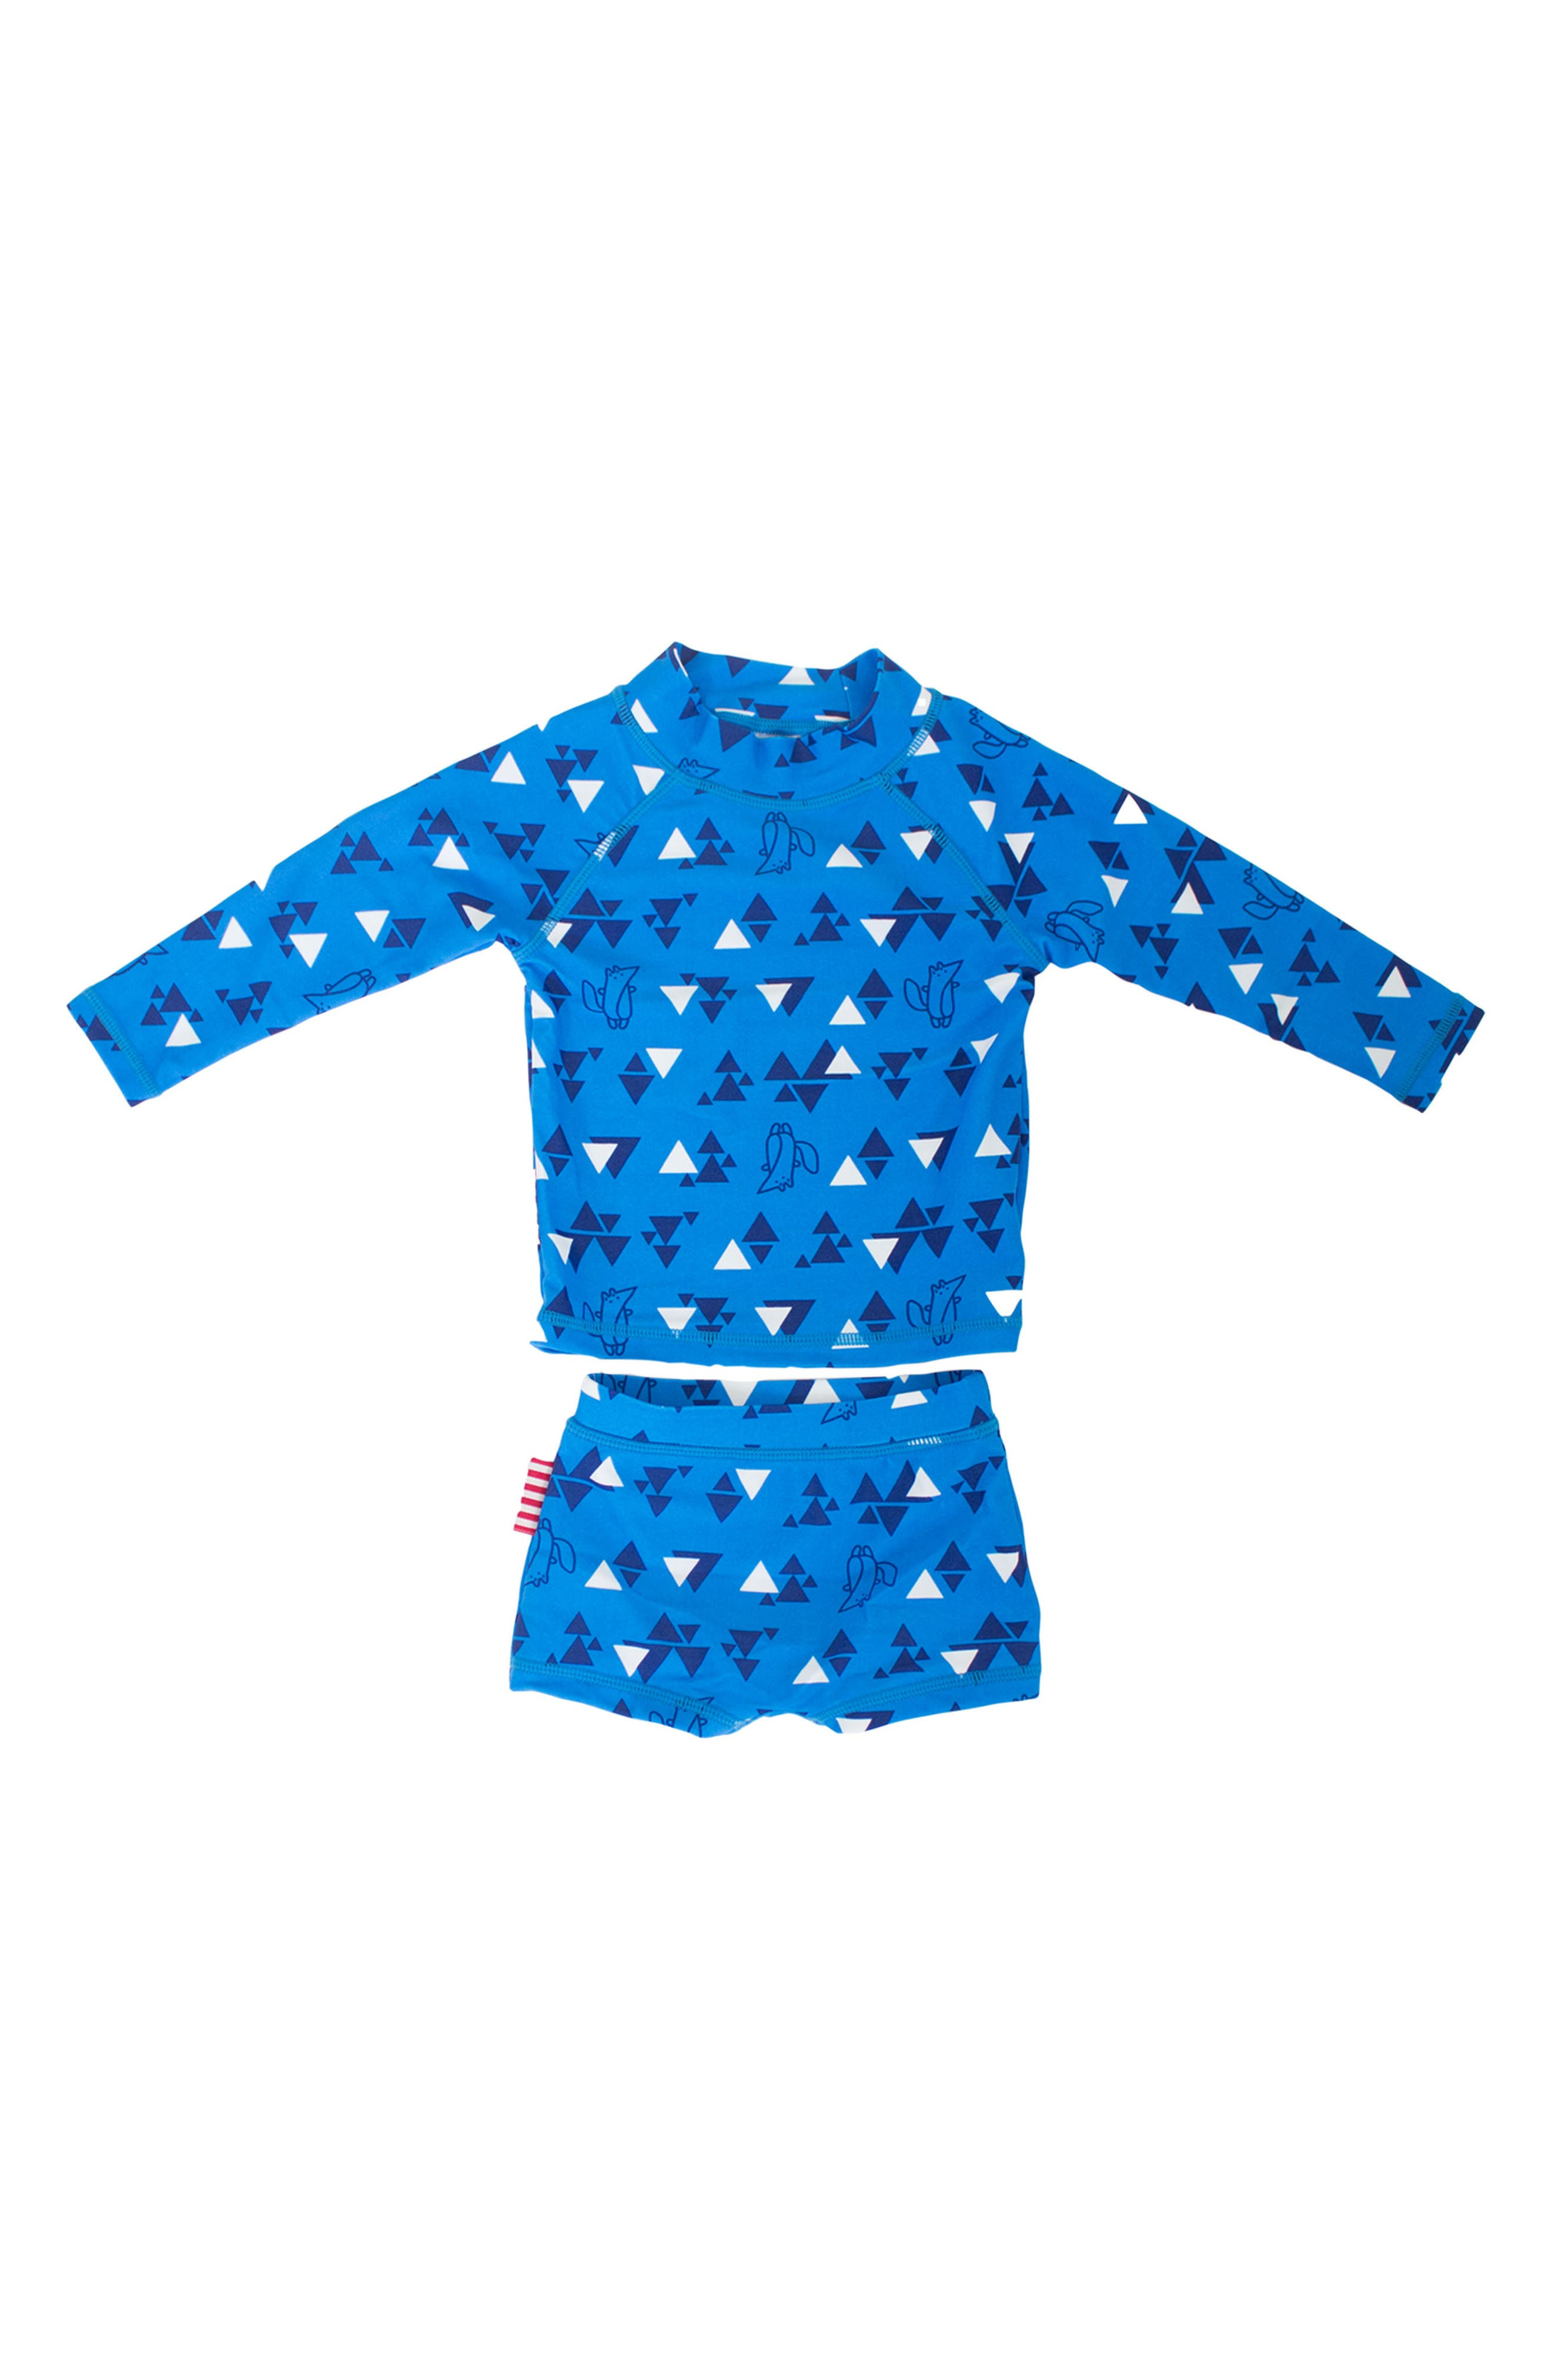 SOOKIbaby Nordic Two-Piece Rashguard Swimsuit (Baby Boys)